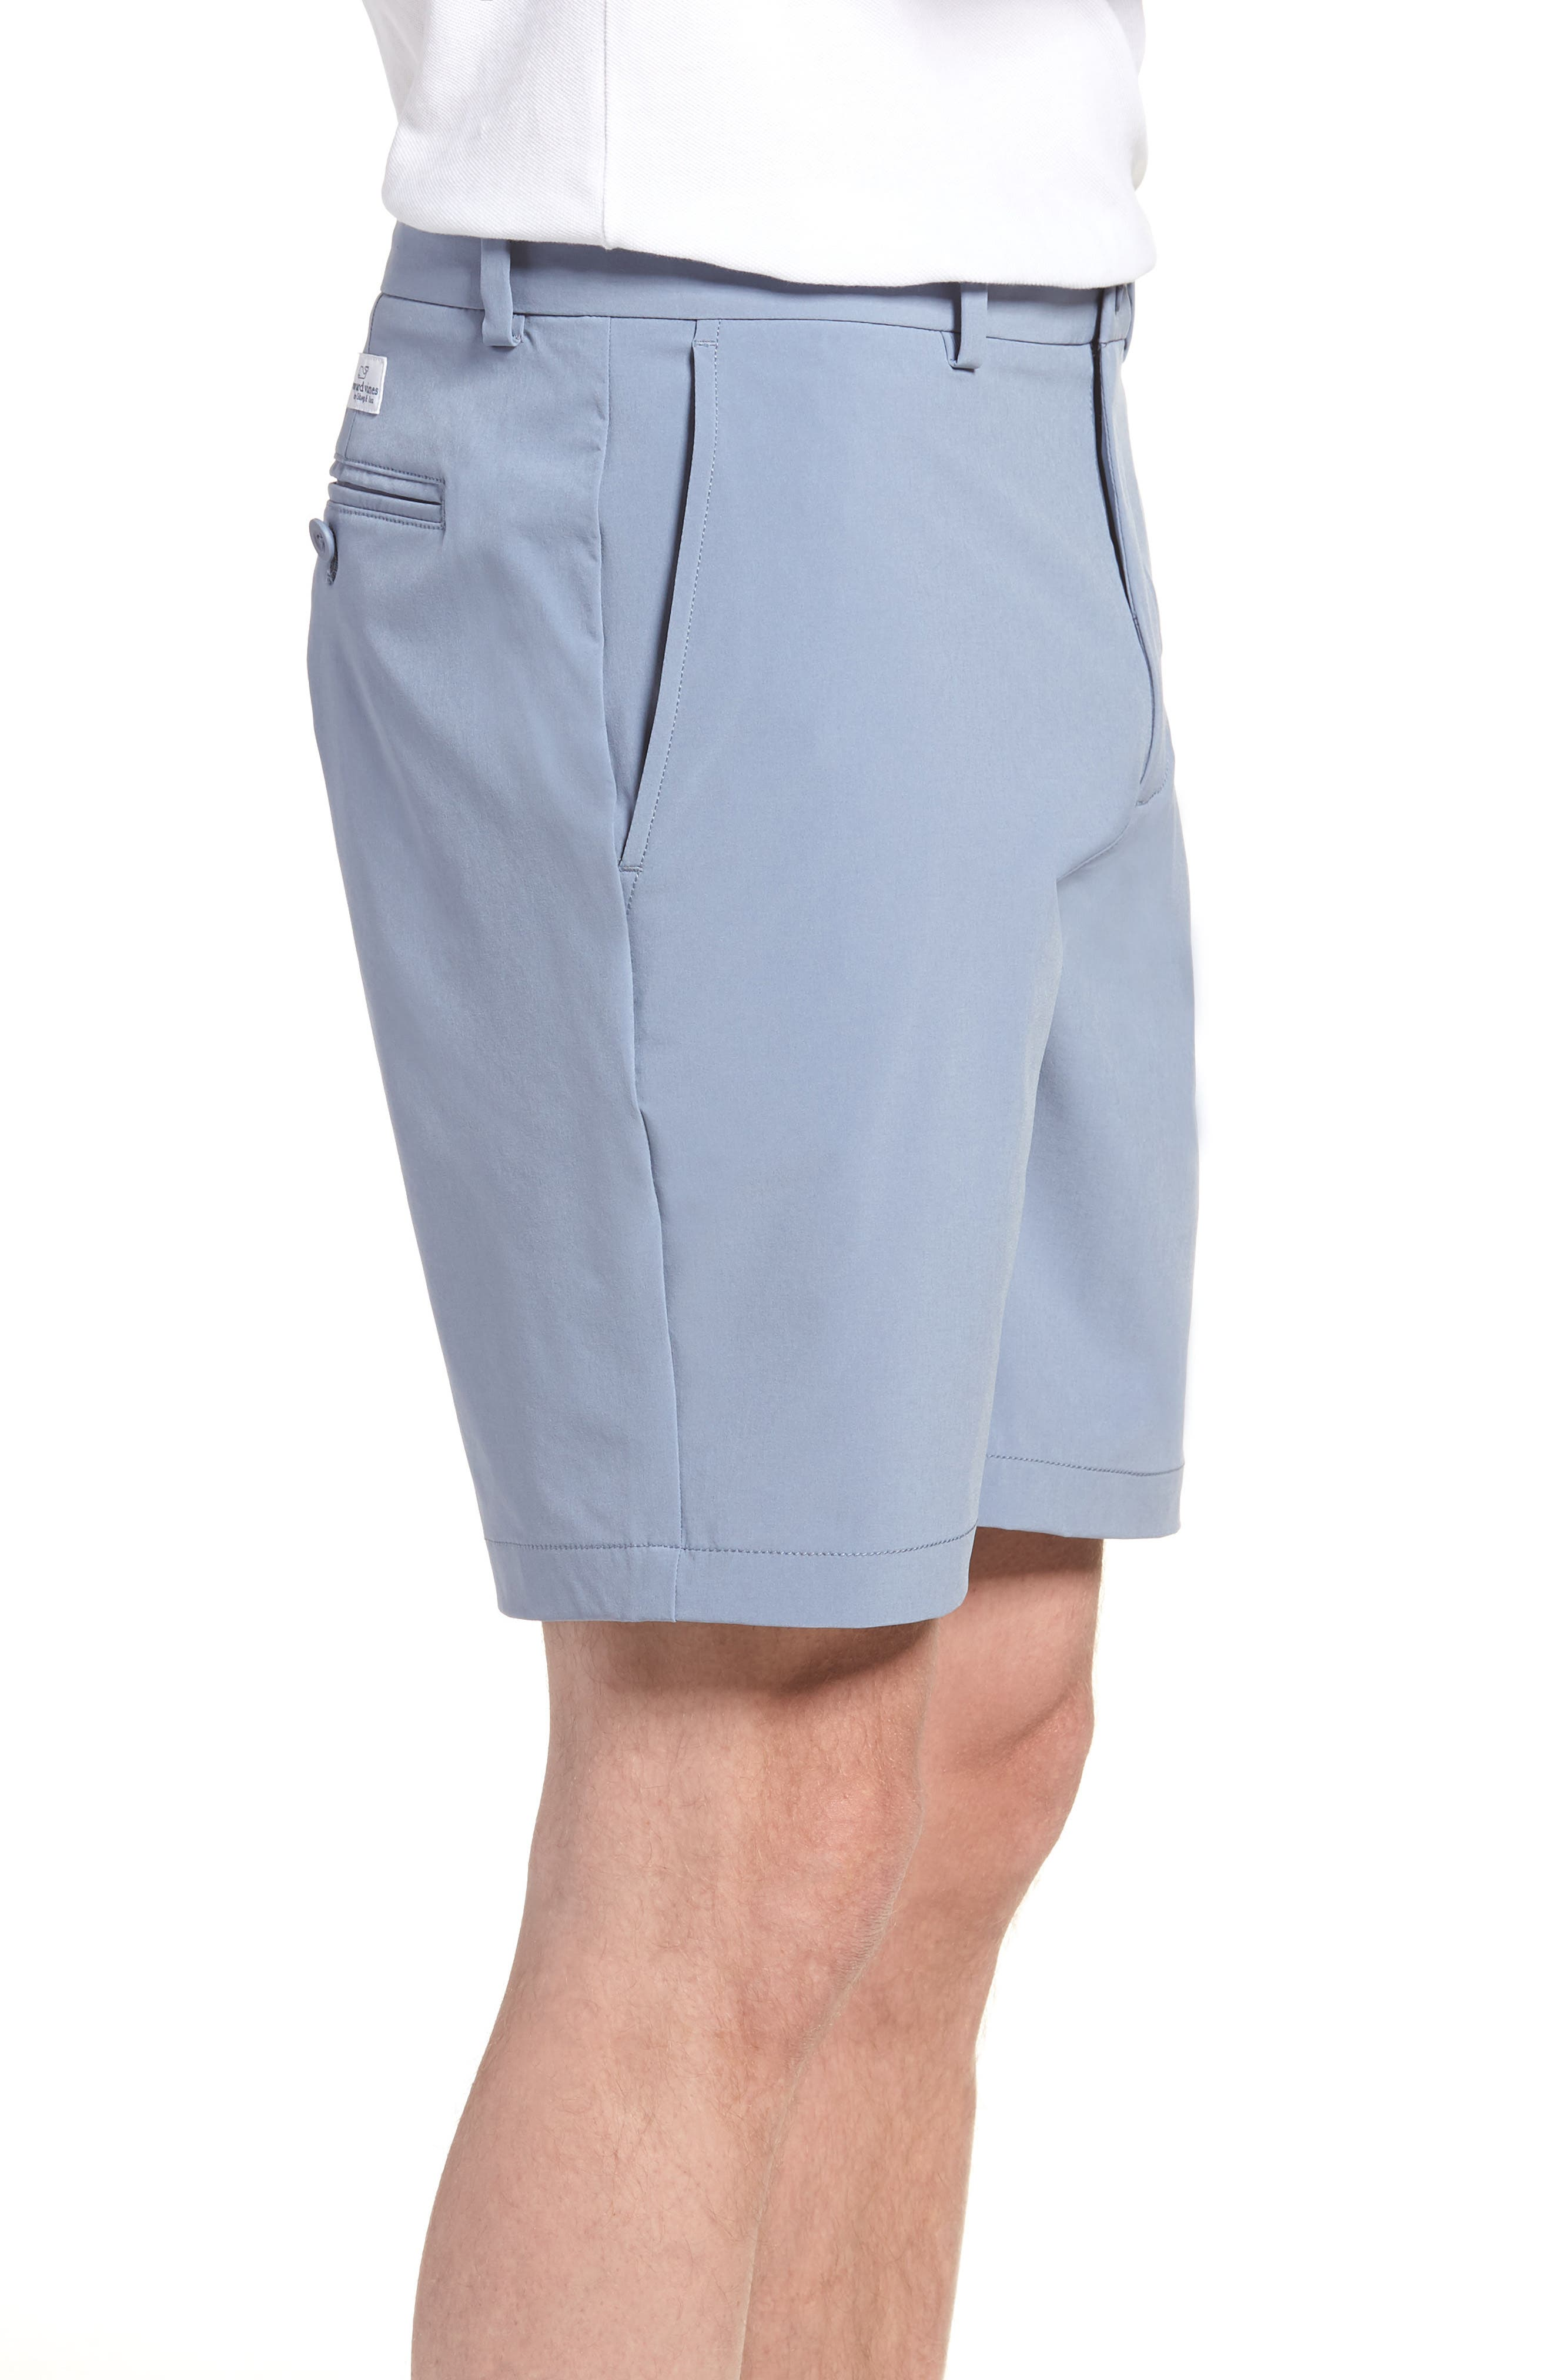 8 Inch Performance Breaker Shorts,                             Alternate thumbnail 3, color,                             Shark